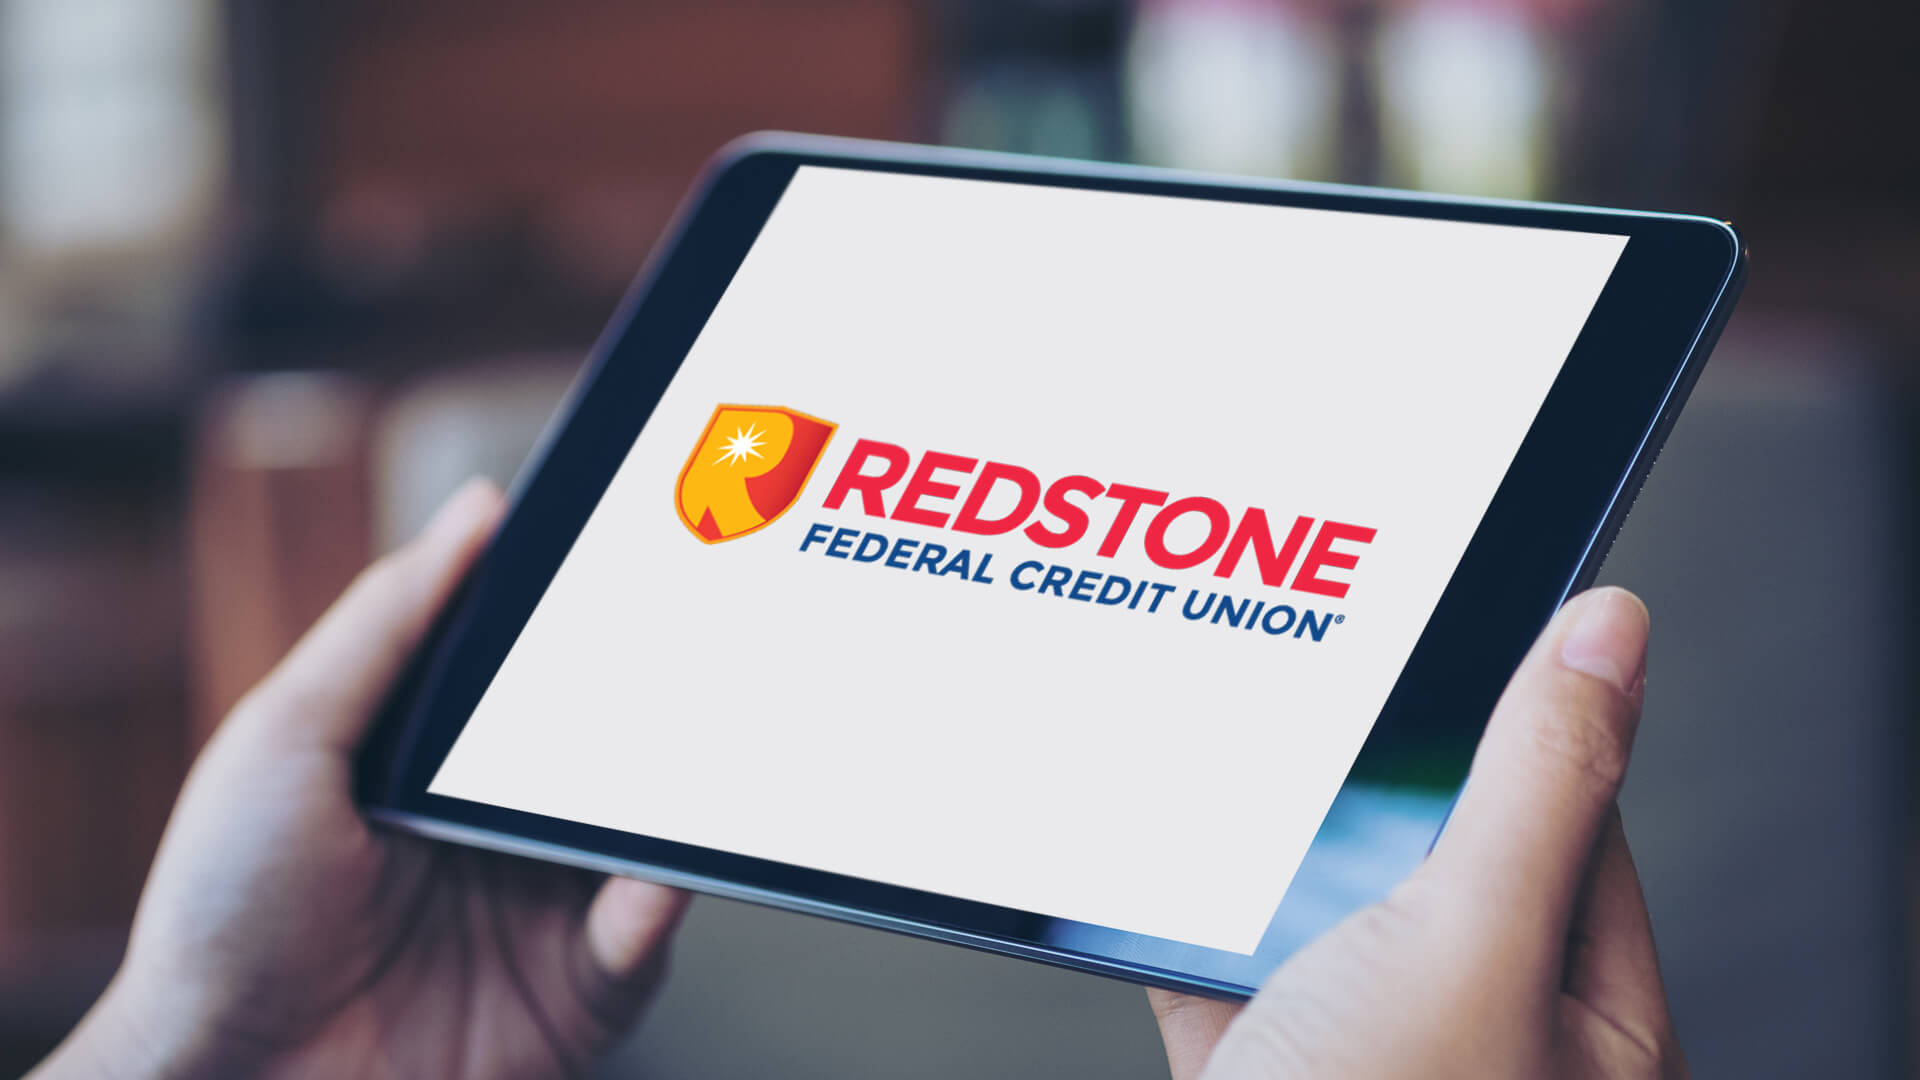 redstone federal credit union review   gobankingrates